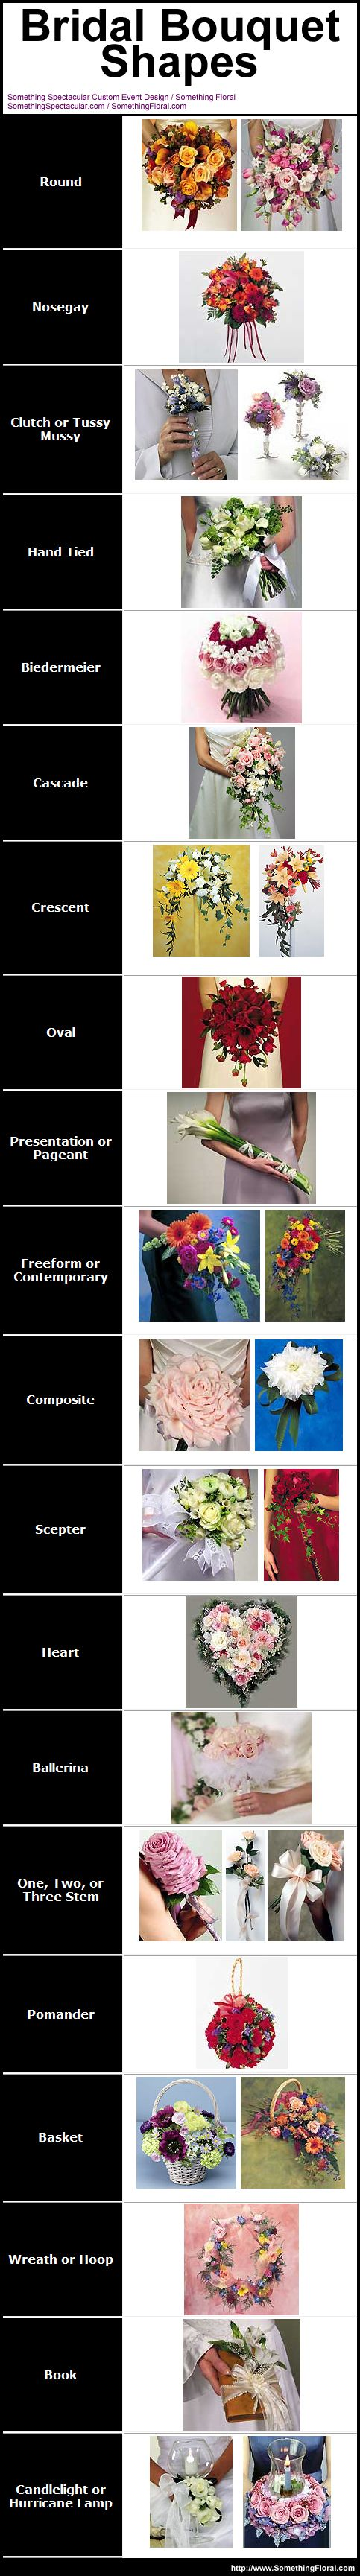 A helpful reference for brides. A pictorial list of bridal bouquet and bridesmaid bouquet shapes. The cascade is really pretty!